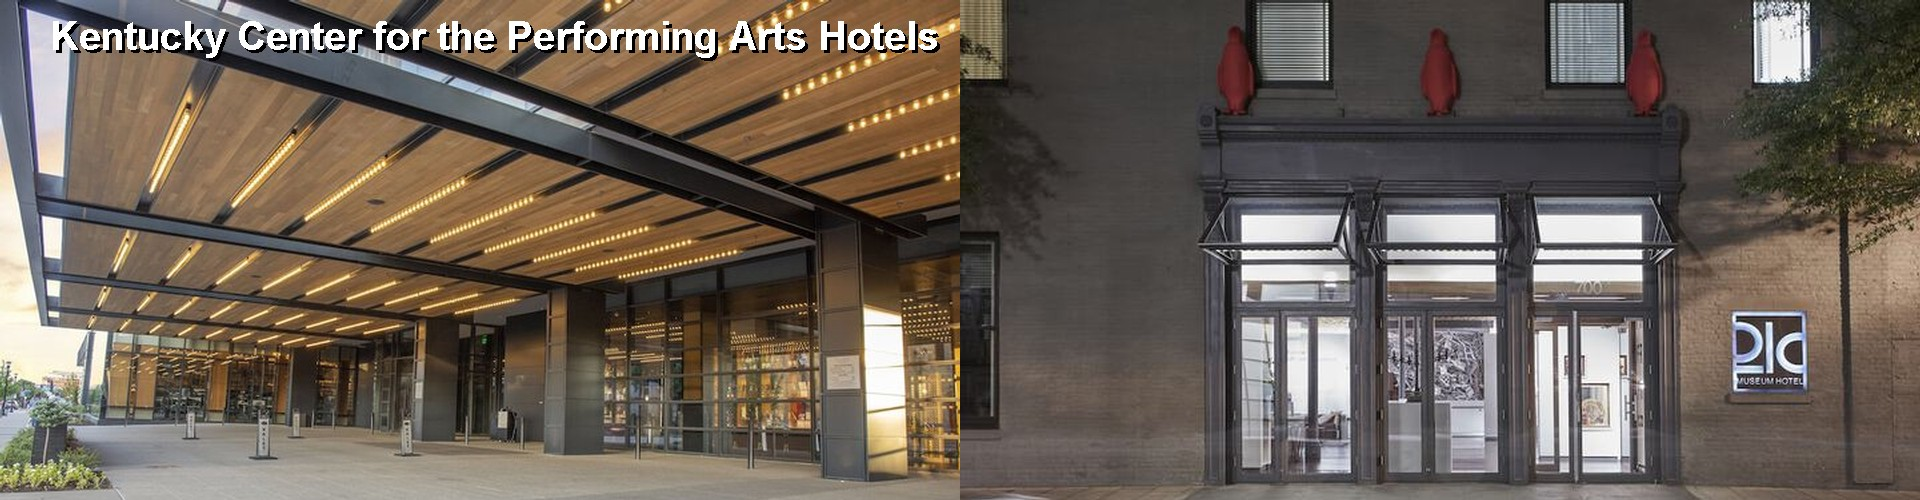 5 Best Hotels near Kentucky Center for the Performing Arts